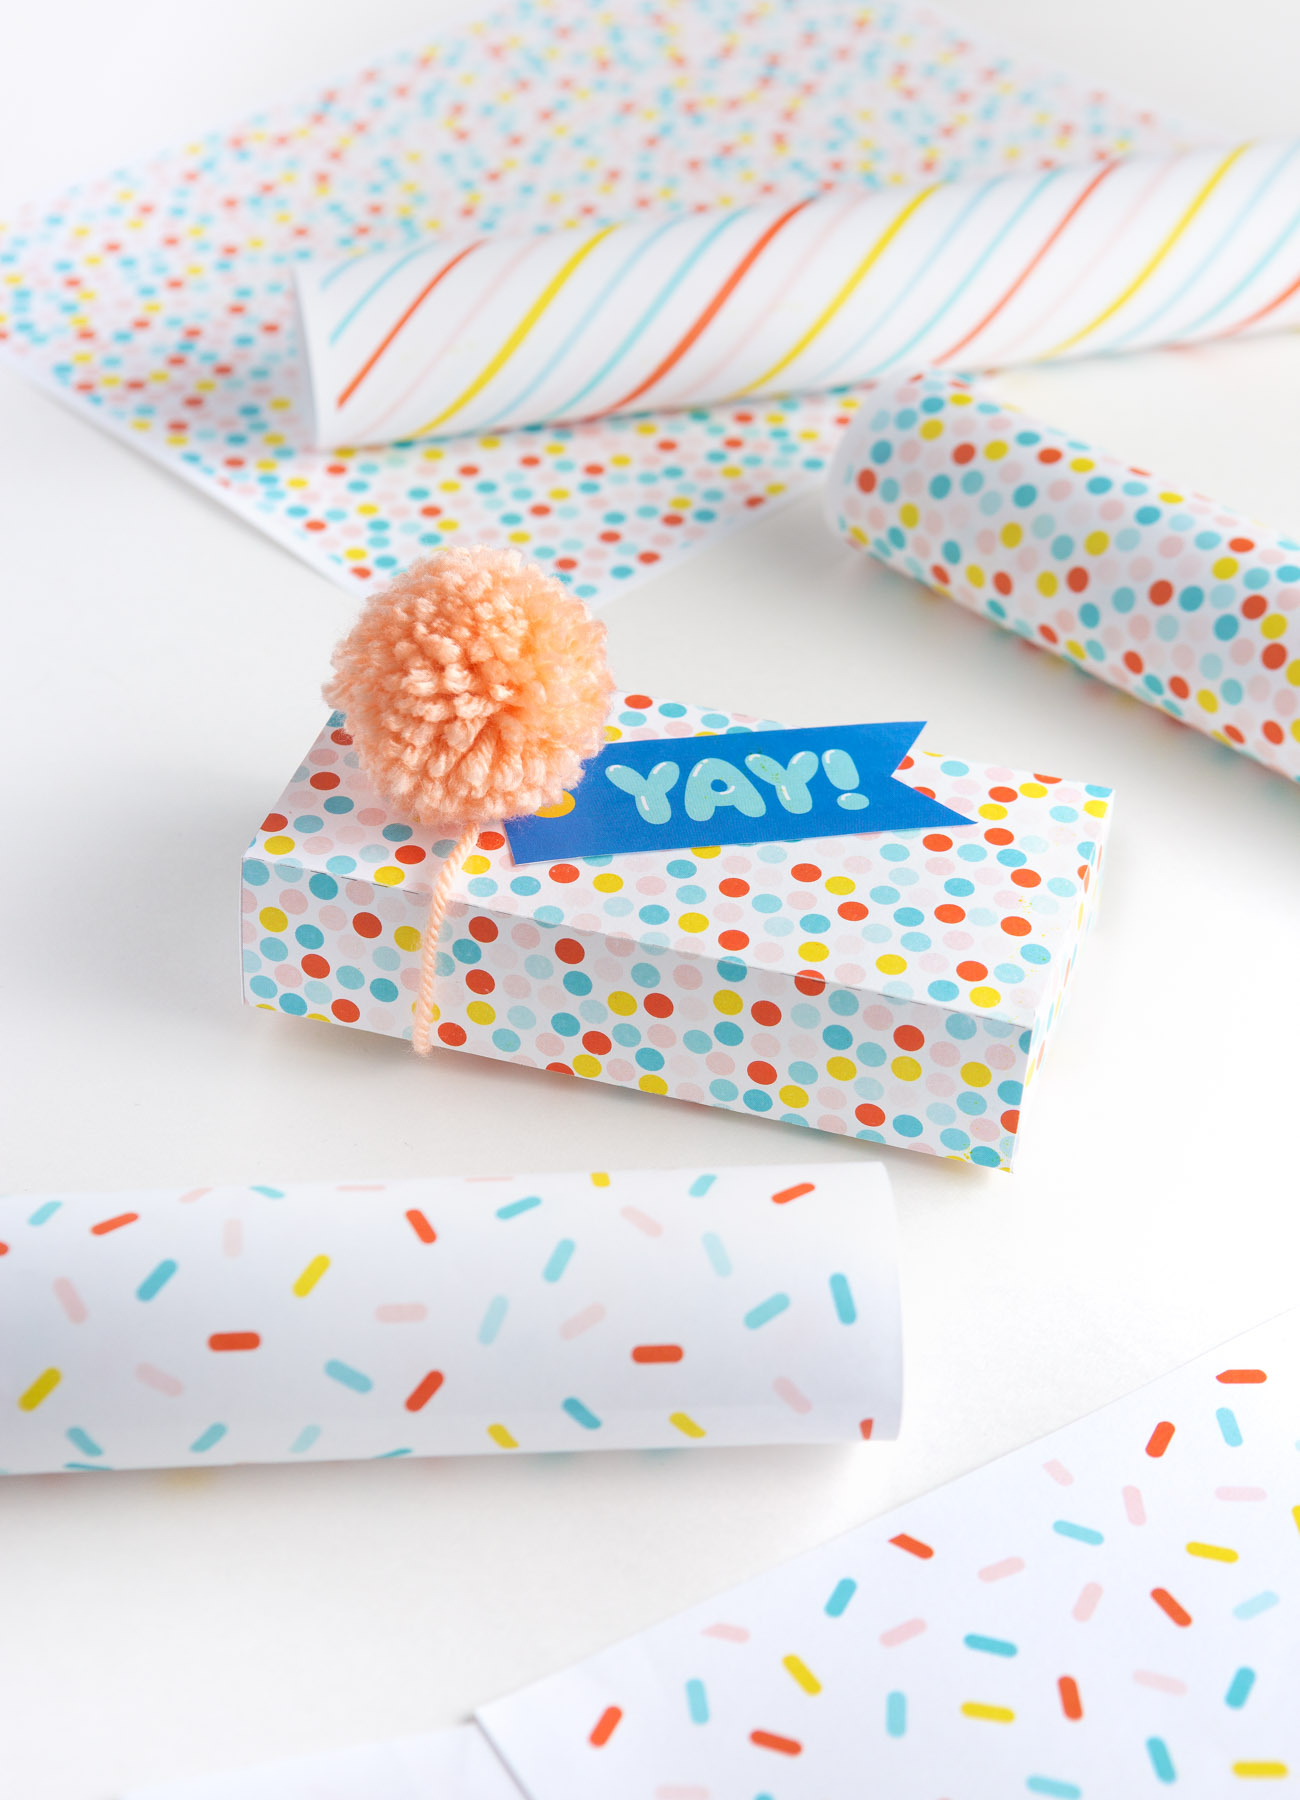 YAY printable happy birthday tag on colorful polka dot gift box